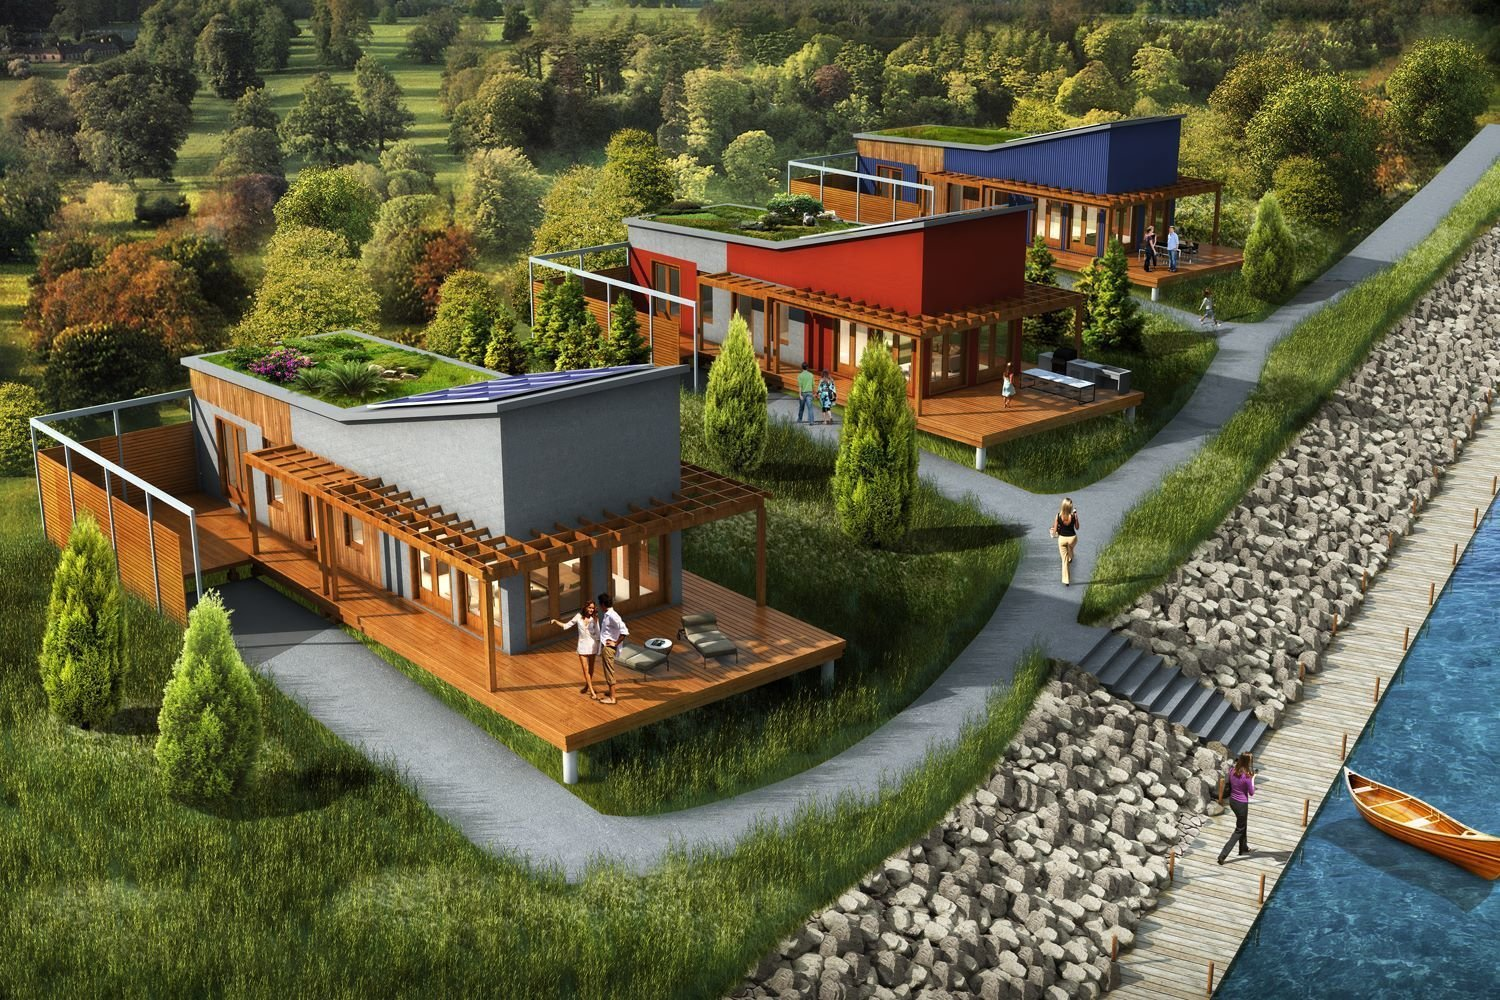 Prefabricated Kit Houses Canada Bc Design And Build